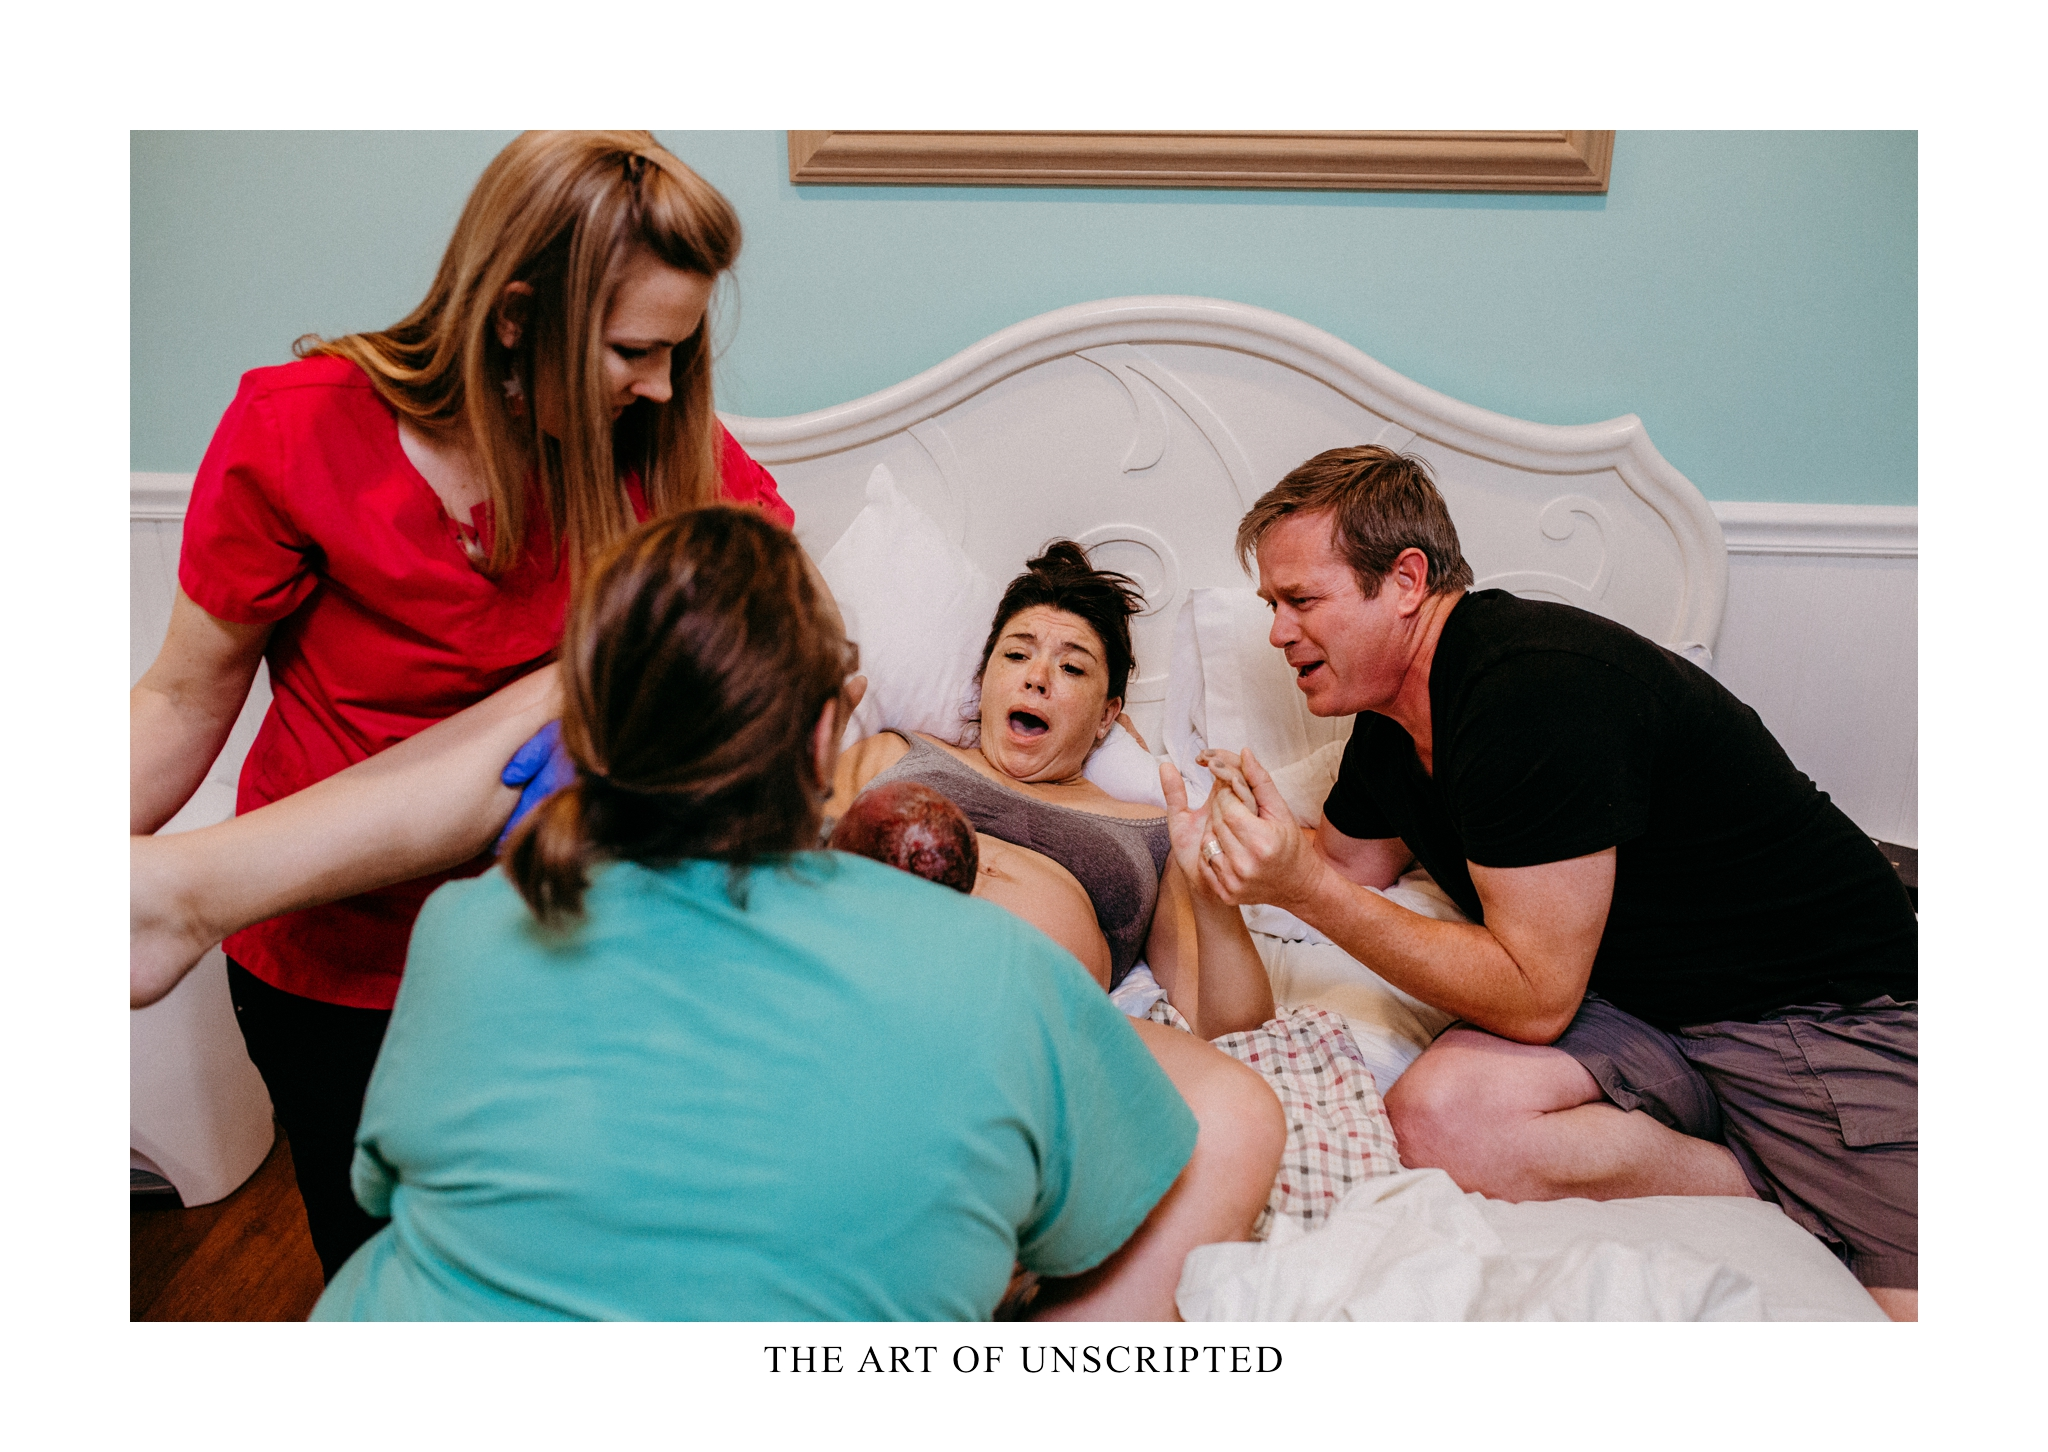 2017-06-11_001428_A_THE ART OF UNSCRIPTED_SPRINGFIELD MO_BIRTH PHOTOGRAPHER_ DOCUMENTARY_STORYTELLING_417_PHOTOGRAPHER